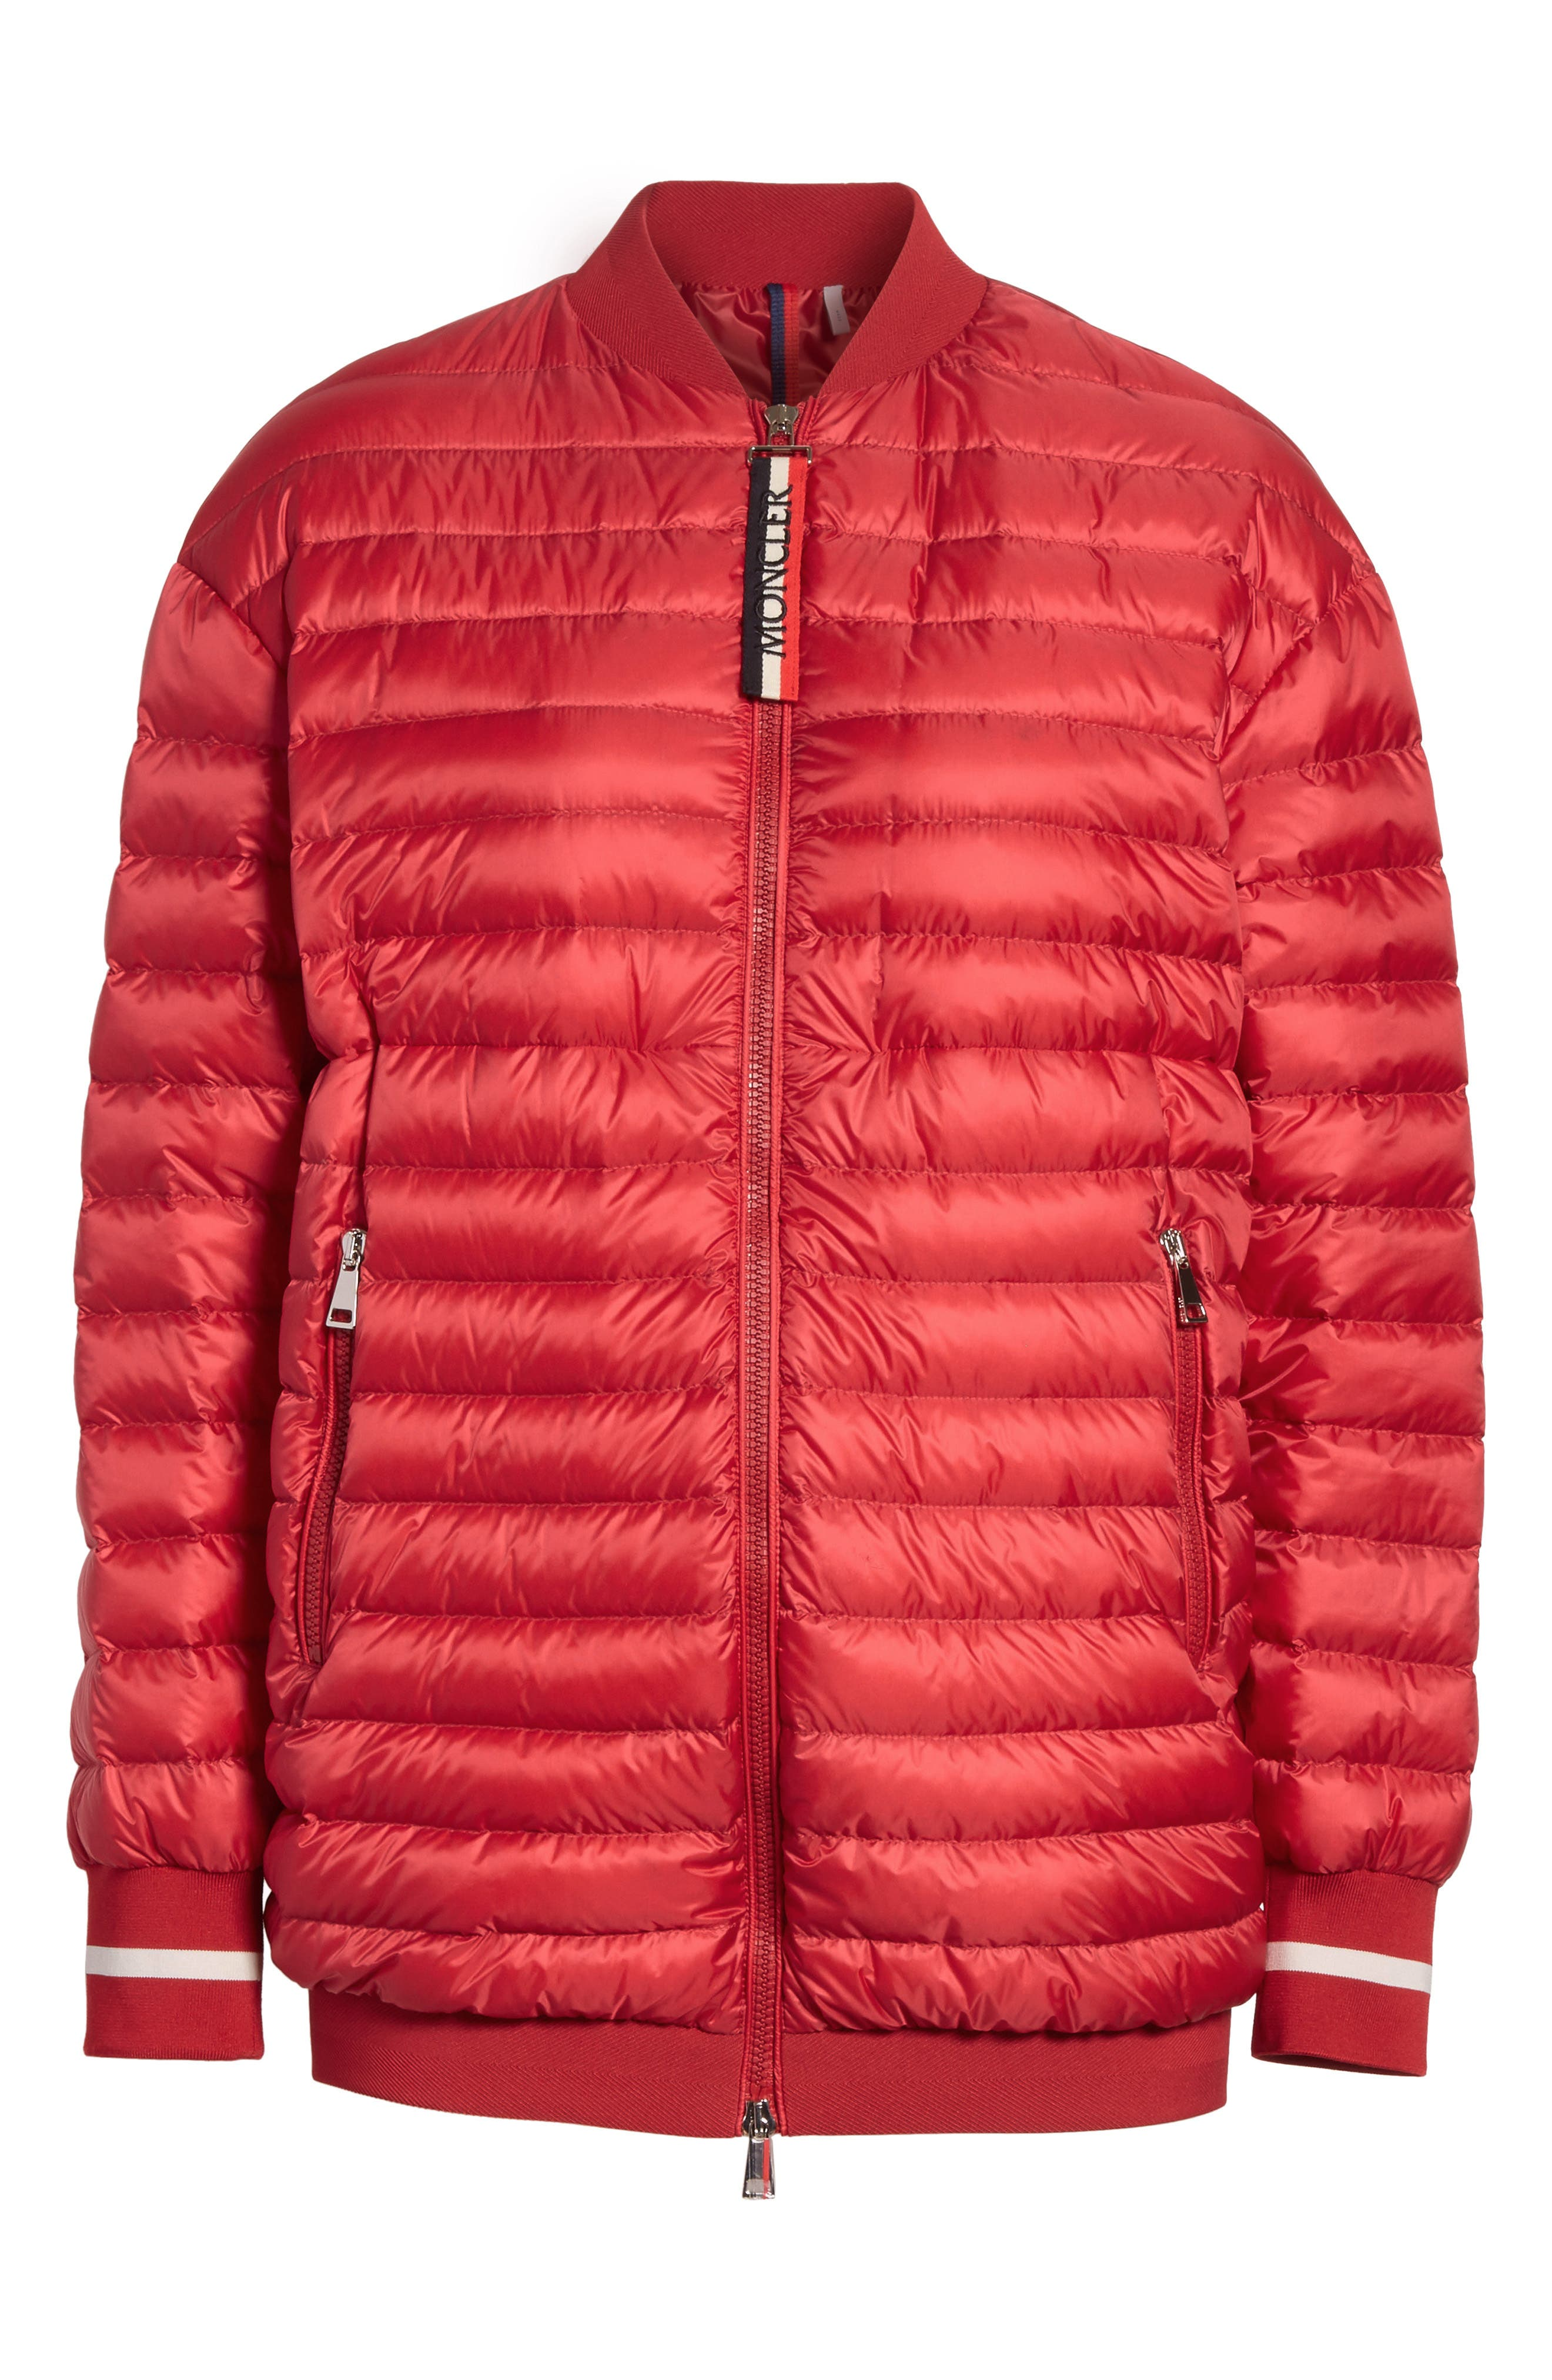 Charoite Water Resistant Down Puffer Coat,                             Alternate thumbnail 8, color,                             Red